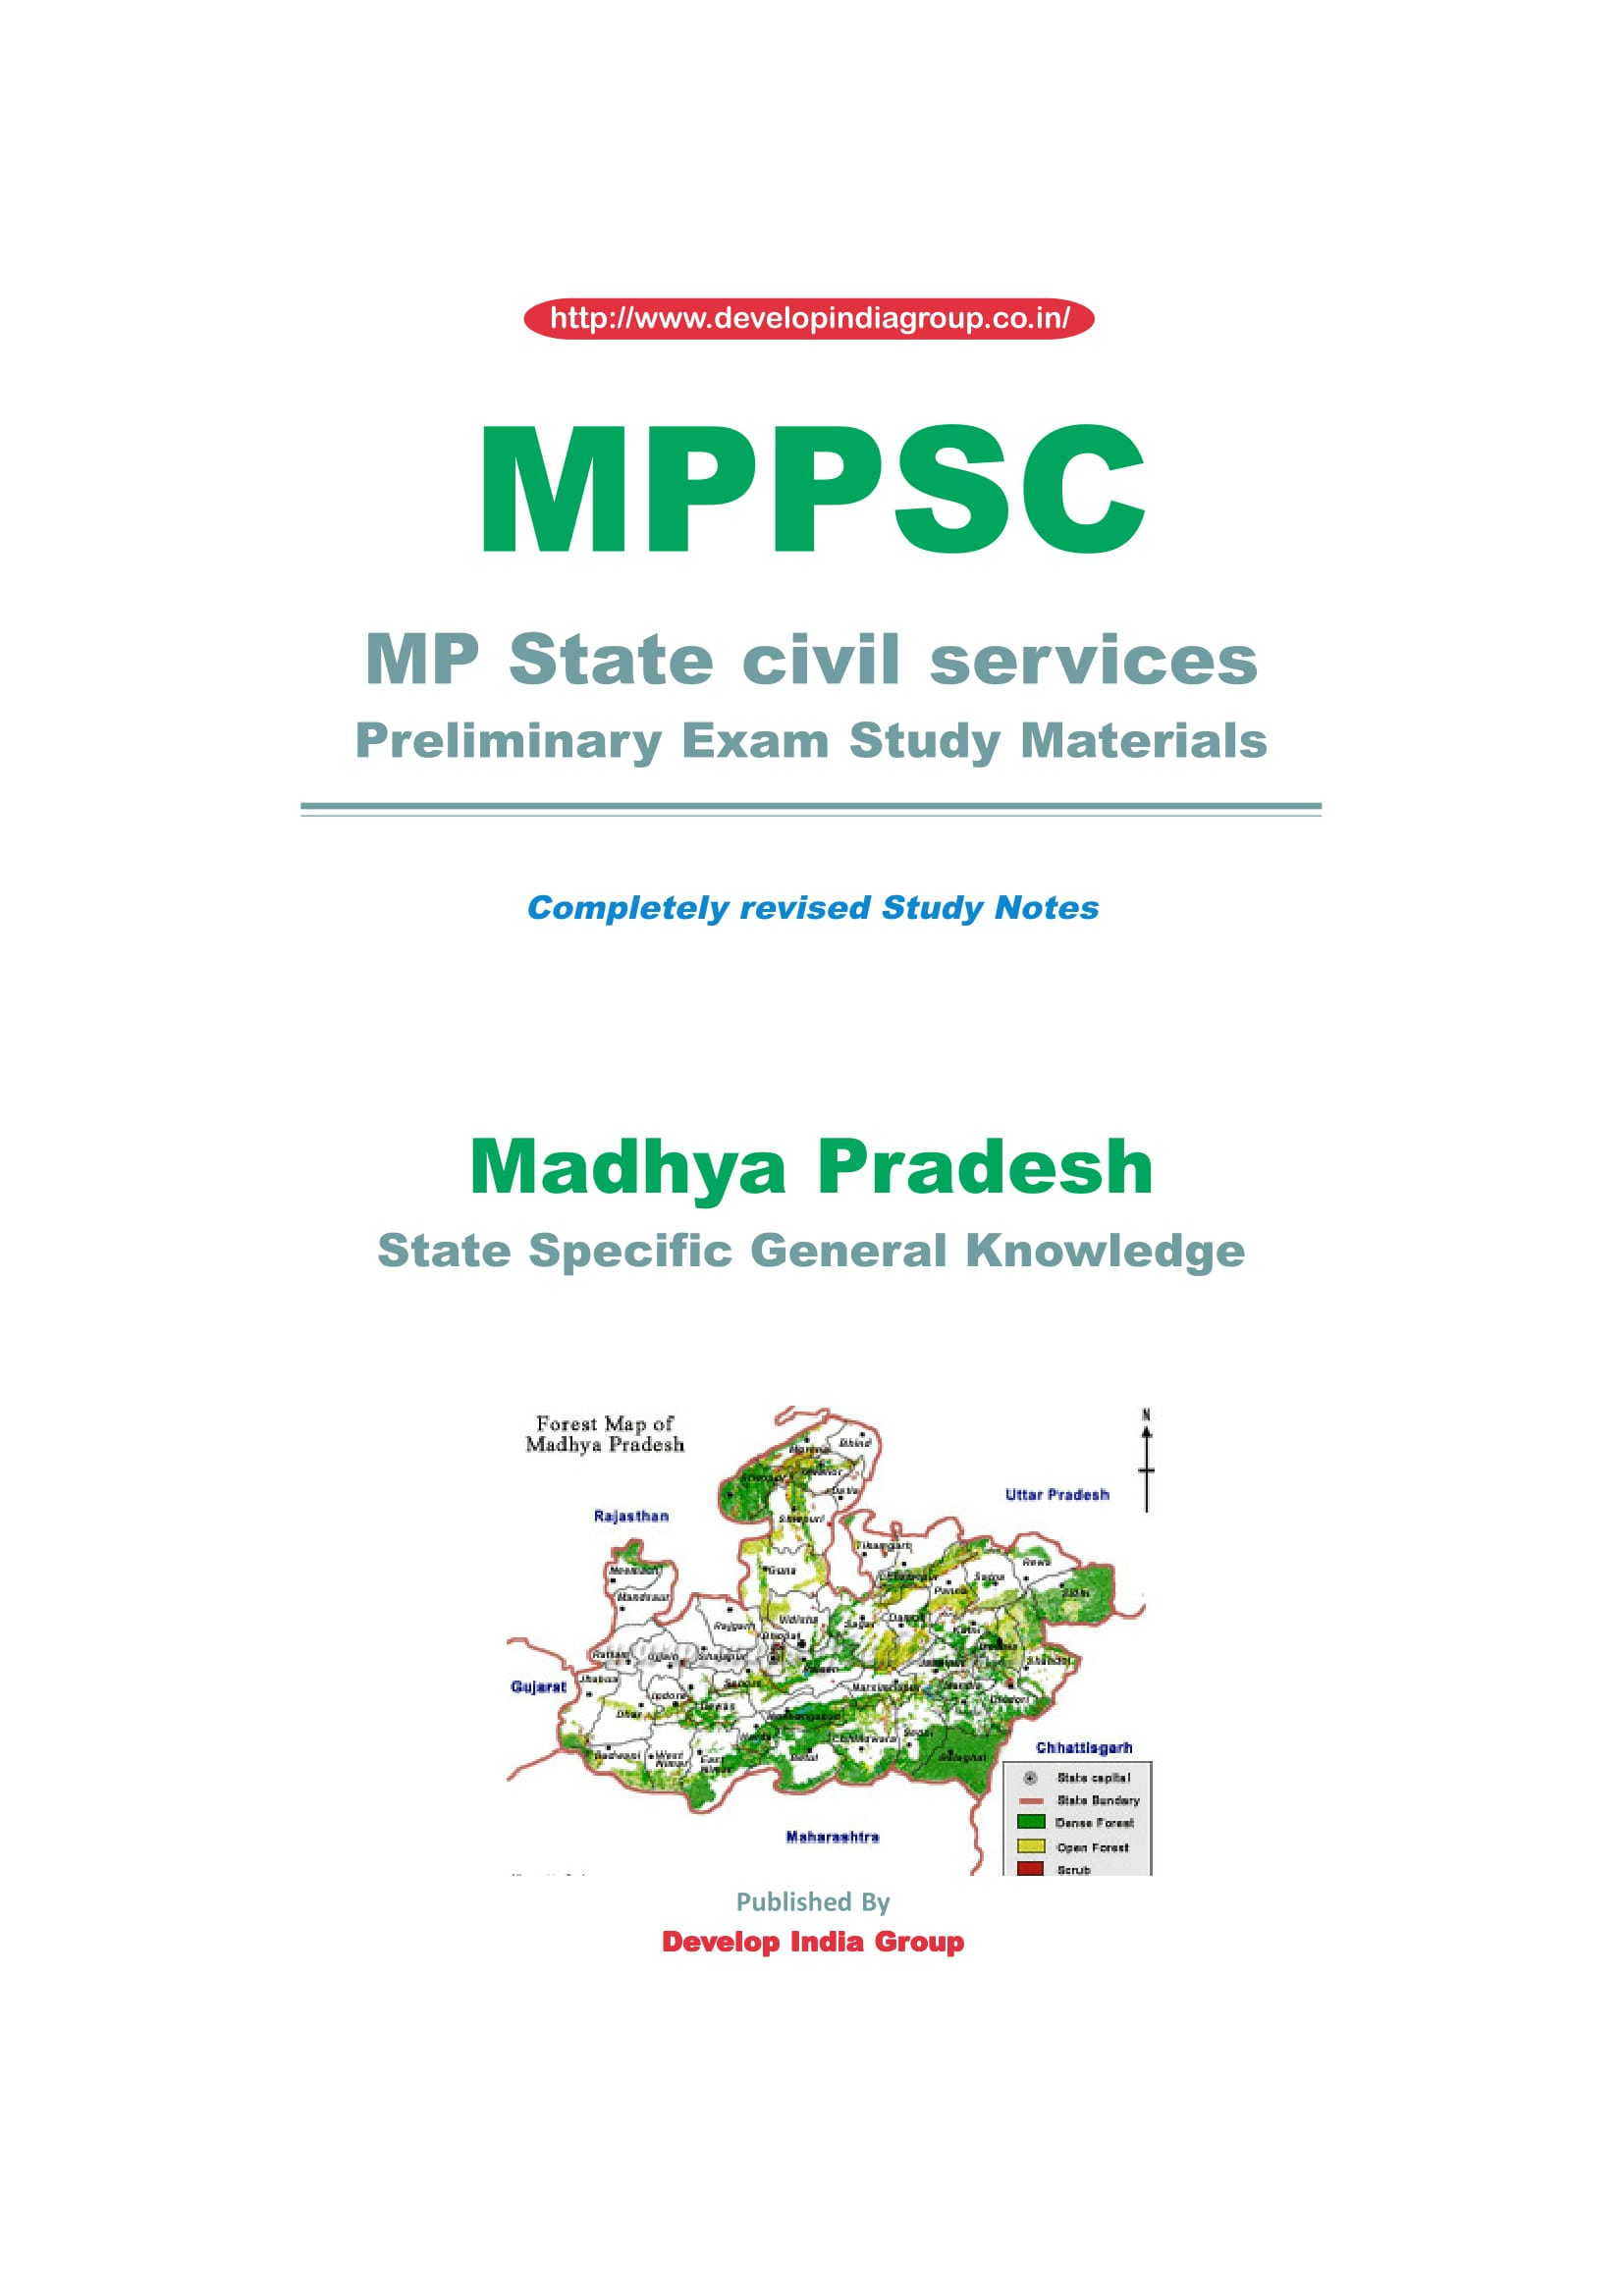 MPPSC State GK in English